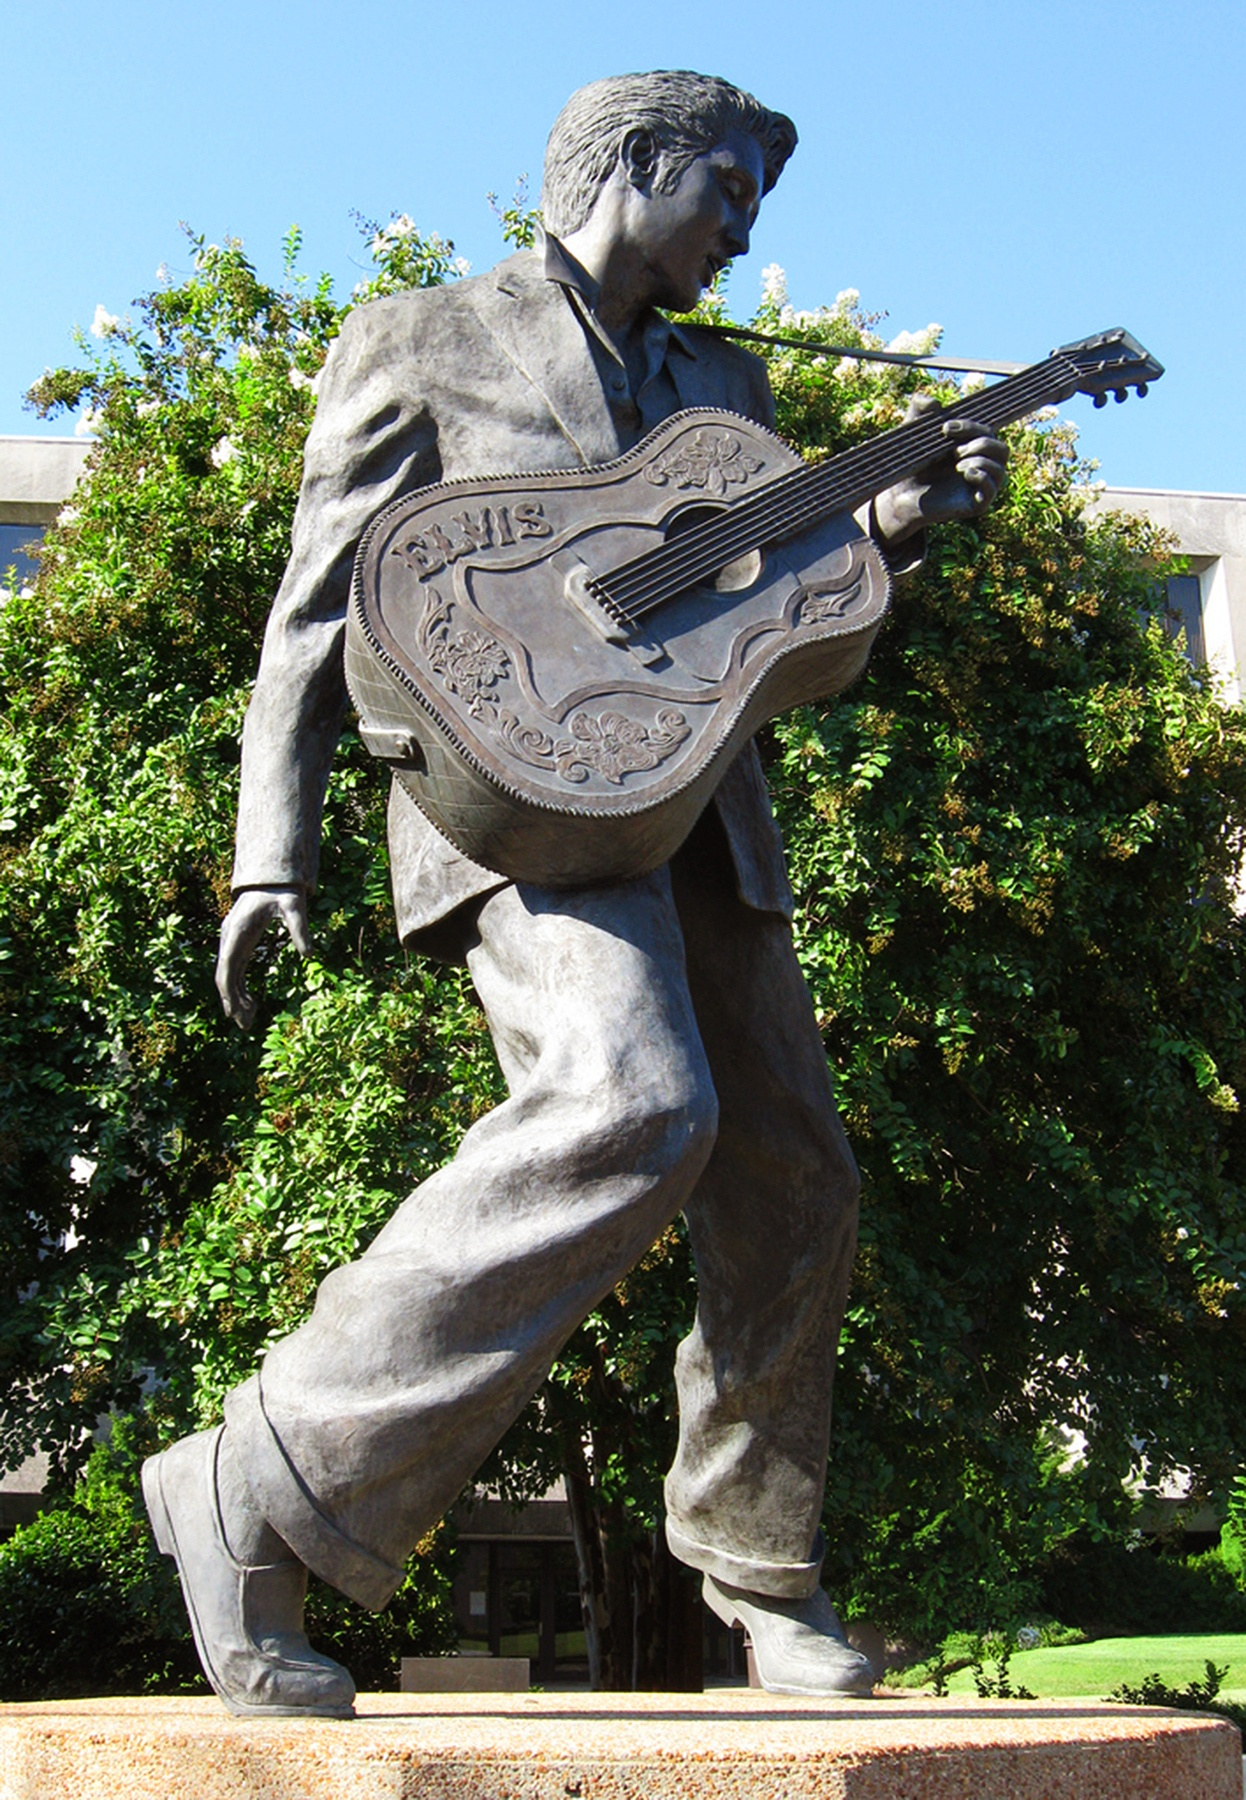 You can't miss this statue in the heart of Beale Street.